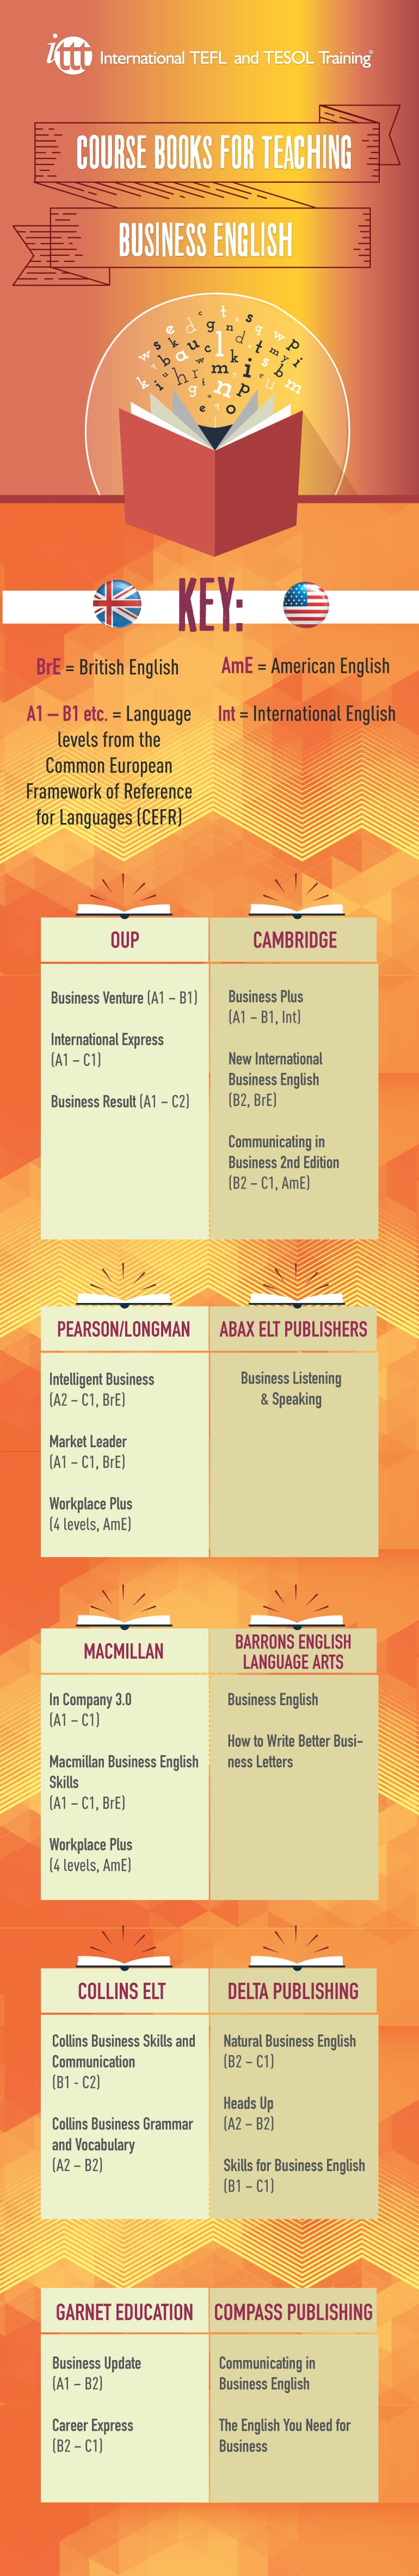 Infographic Course Books for Business English